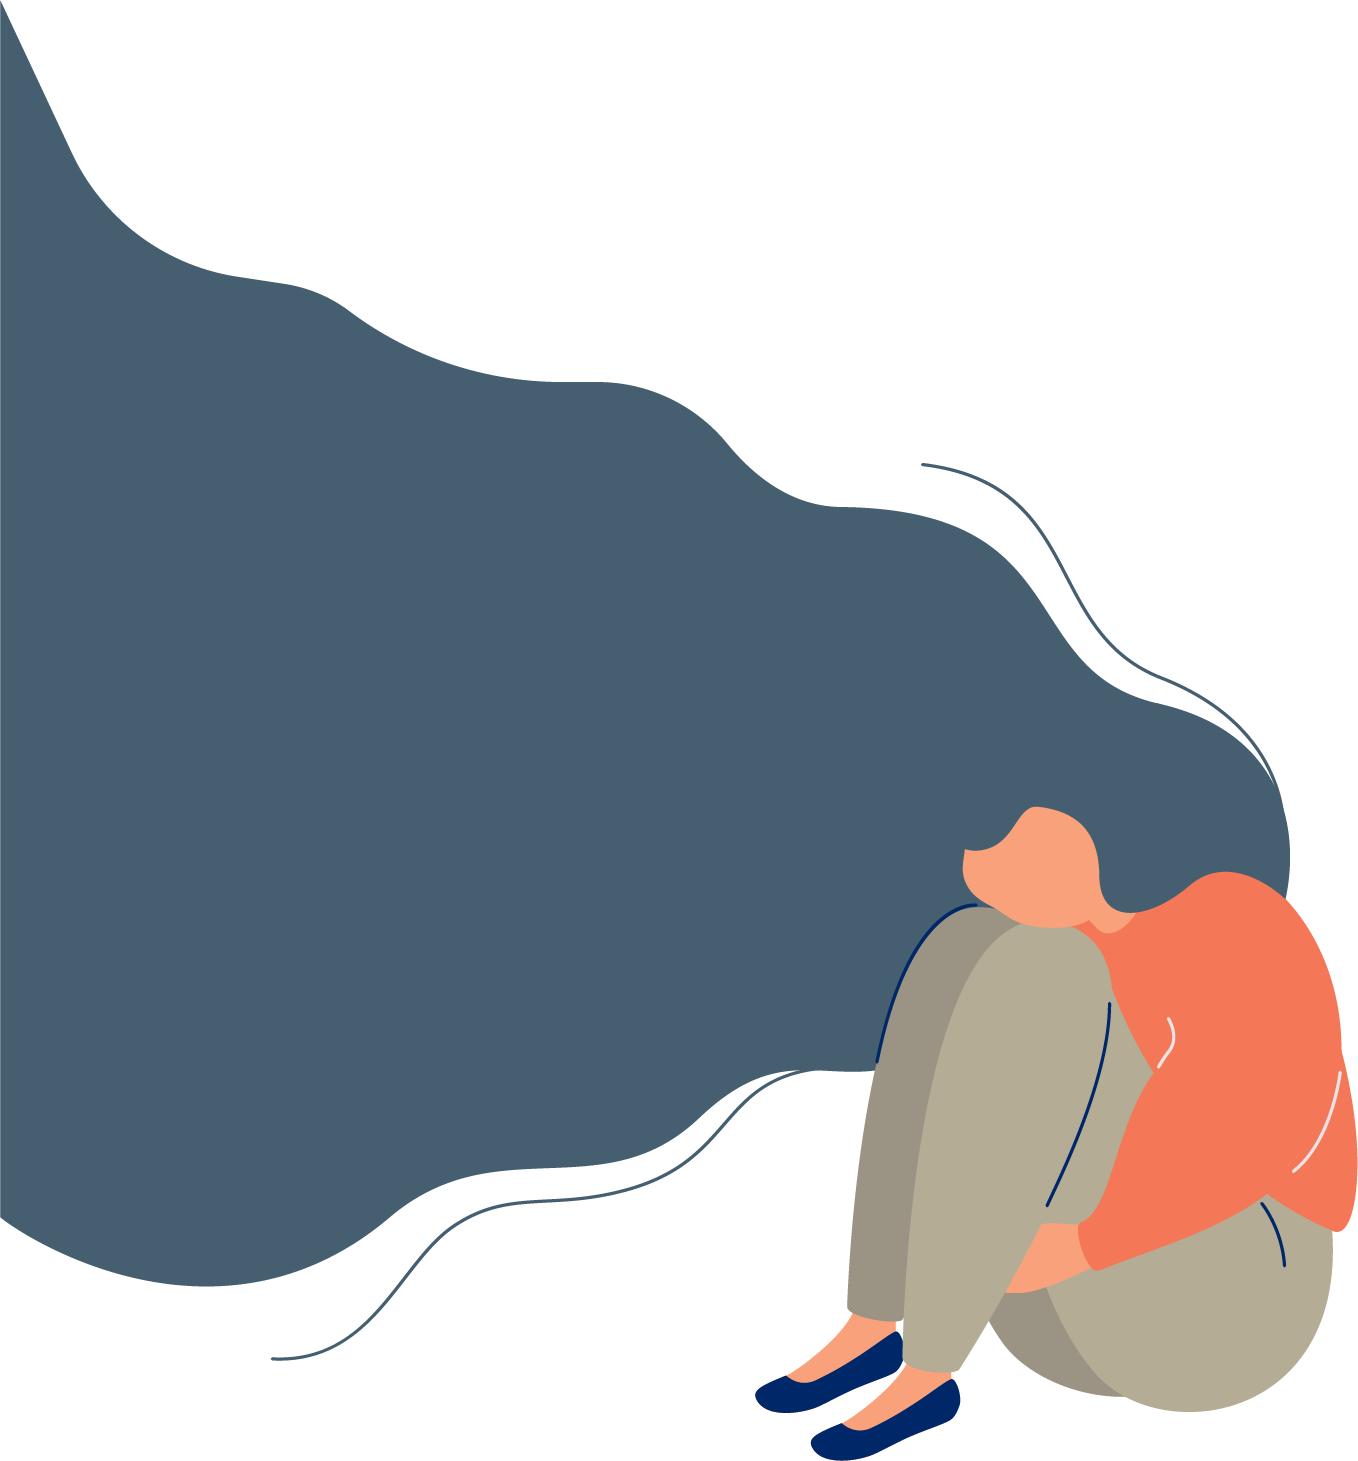 illustration of a depressed woman, sitting on the floor with her arms wrapped around her legs